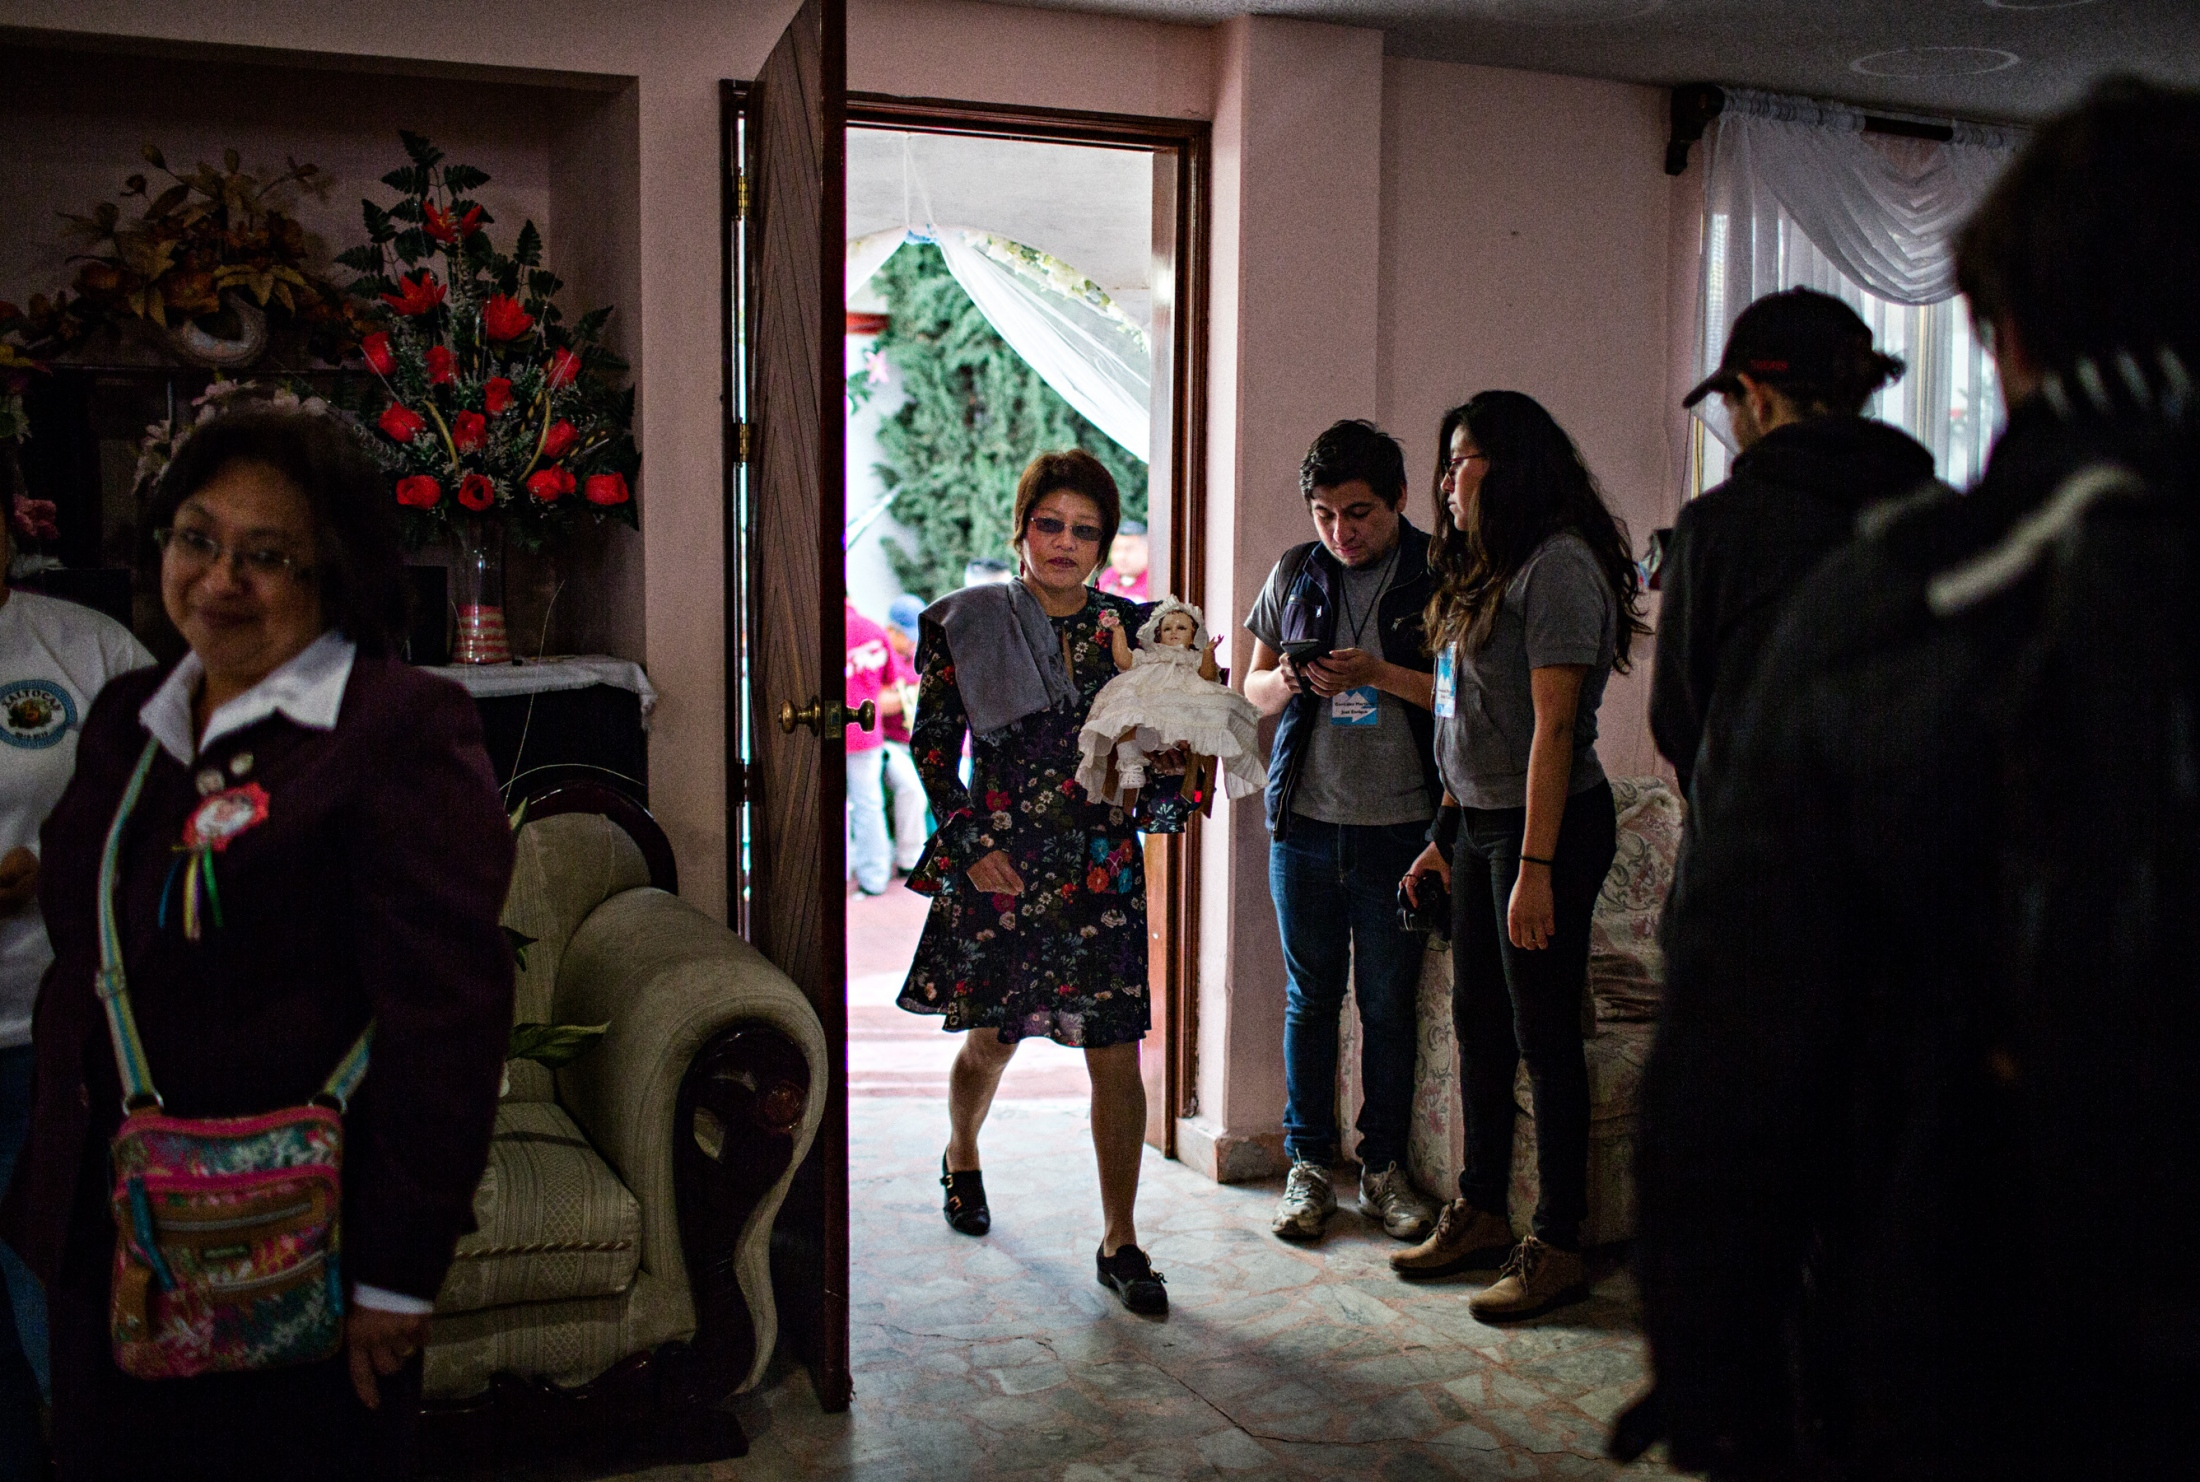 A woman holding a replica of Niñopa enters the living room where the Niño is displayed for worship.